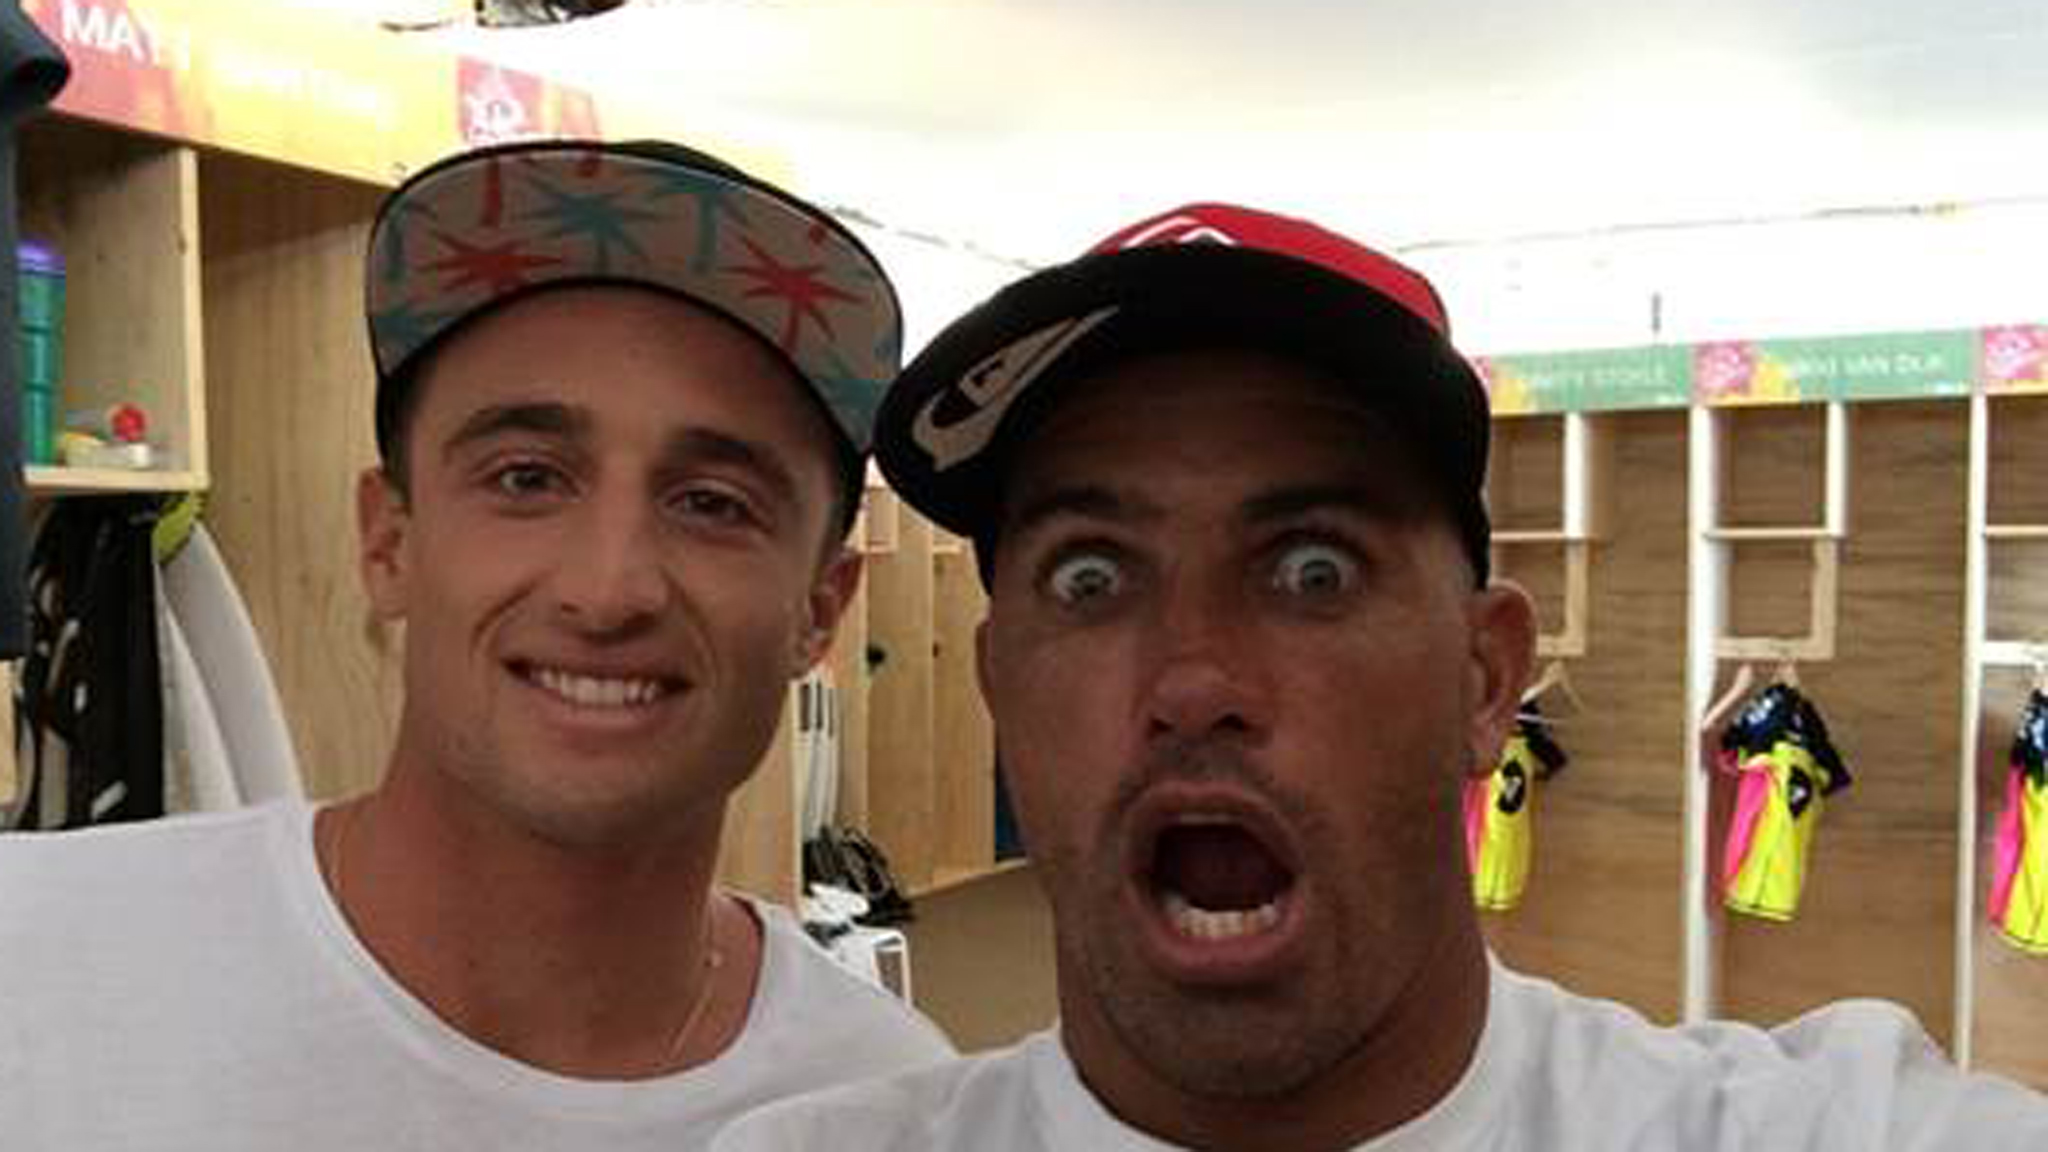 Matt Banting, Kelly Slater